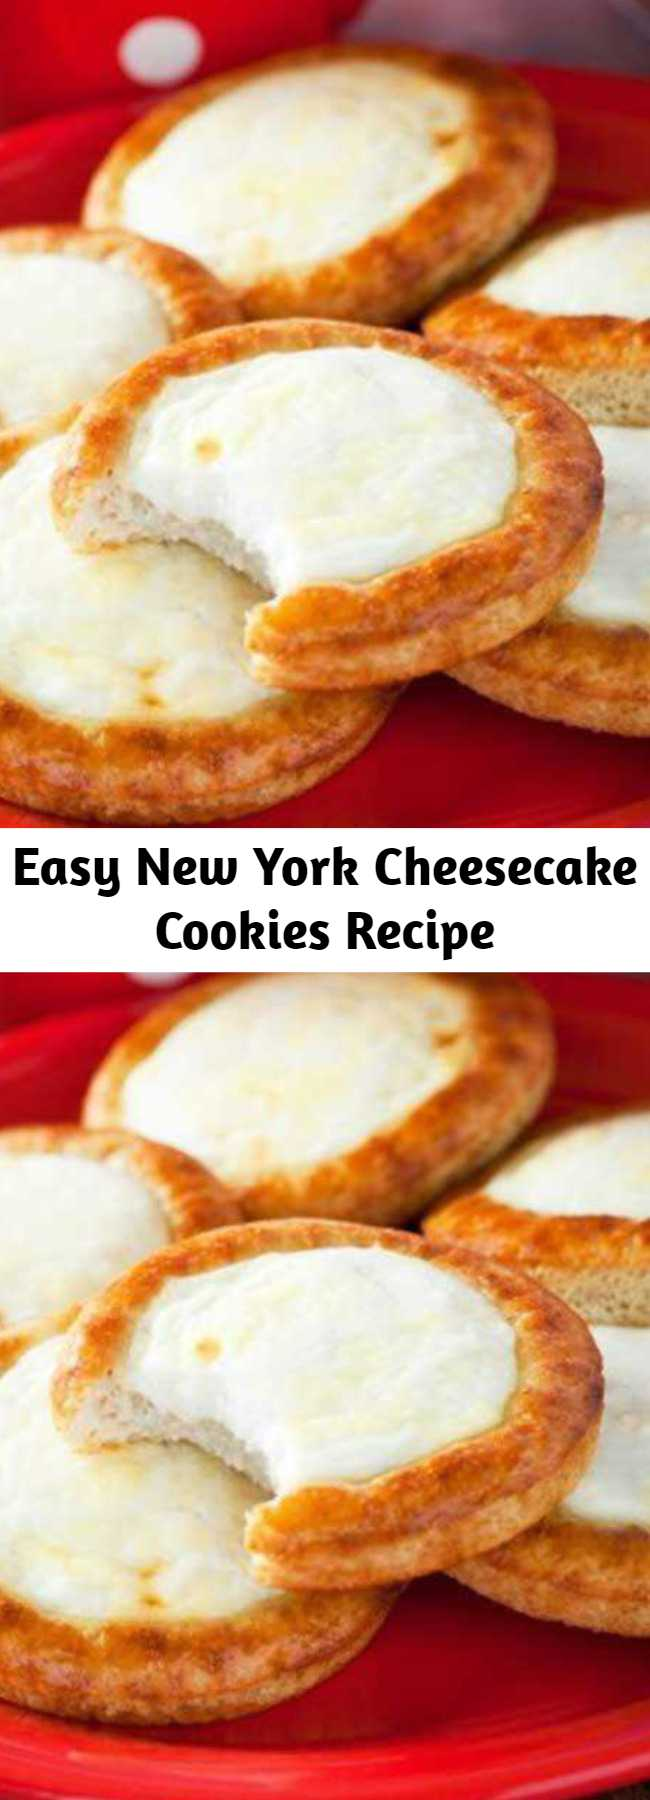 Easy New York Cheesecake Cookies Recipe - What could possibly be better than a slice of New York style cheesecake? How about jamming the whole thing together into cookie form!